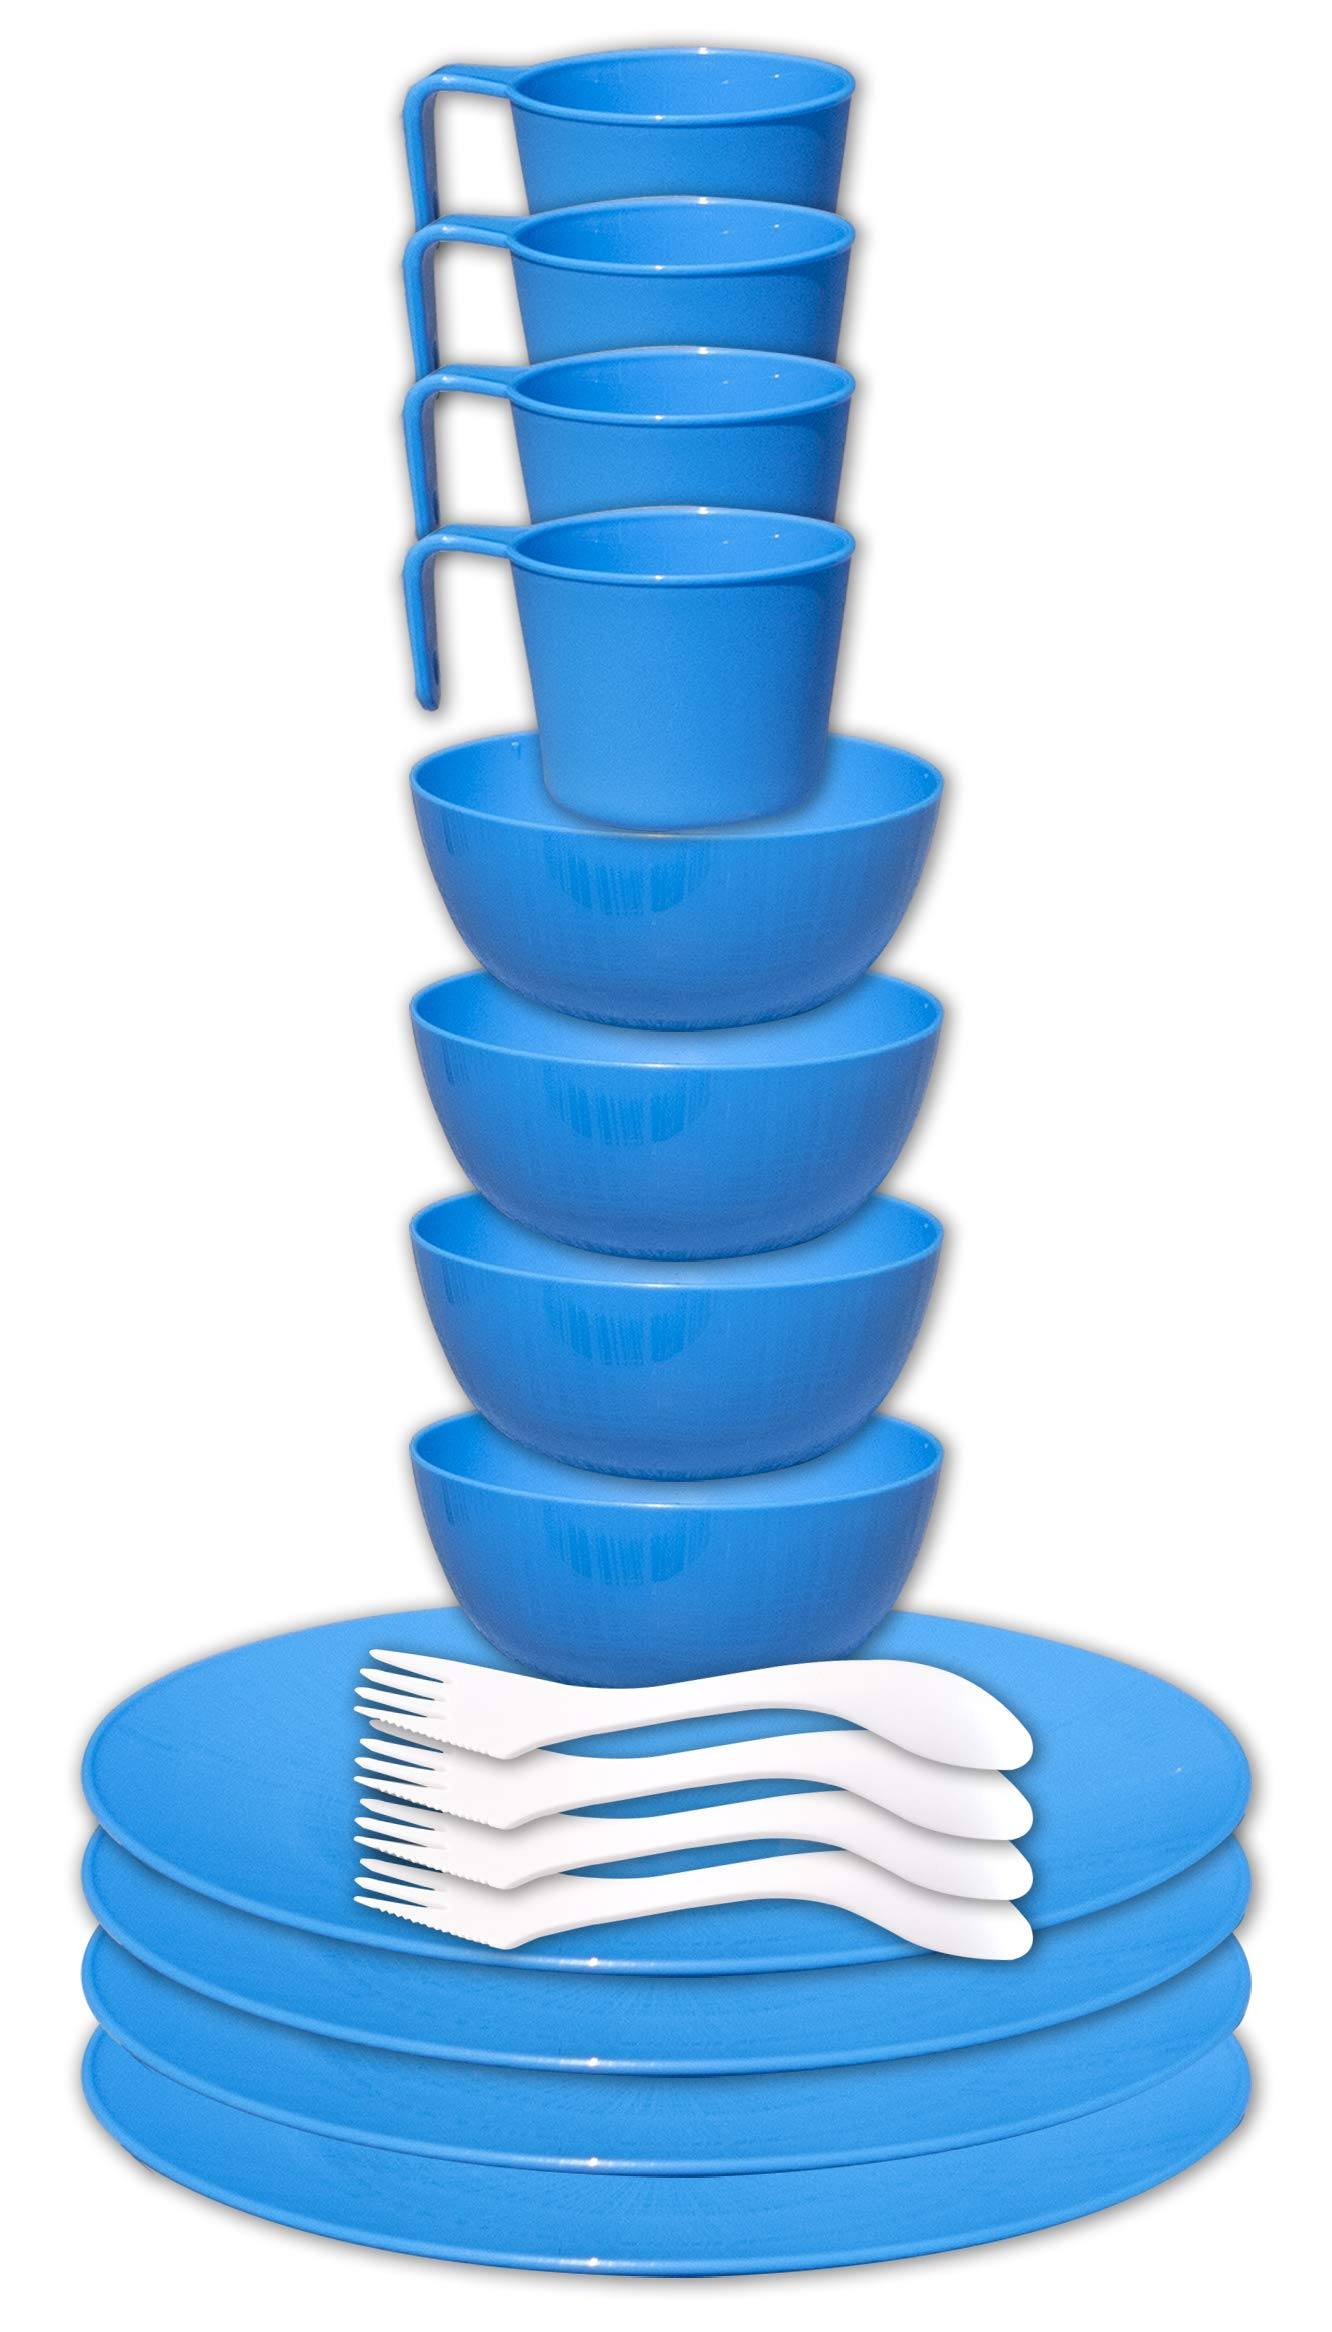 gear4U Camping Tableware Sets - Outdoor Dishes with Mesh Carry Bag - BPA Free - Plate, Bowl, Cup and Utensil for Hiking, Camping, Backpacking, Travel and Outdoor Survival - Blue 4 Person Set by gear4U